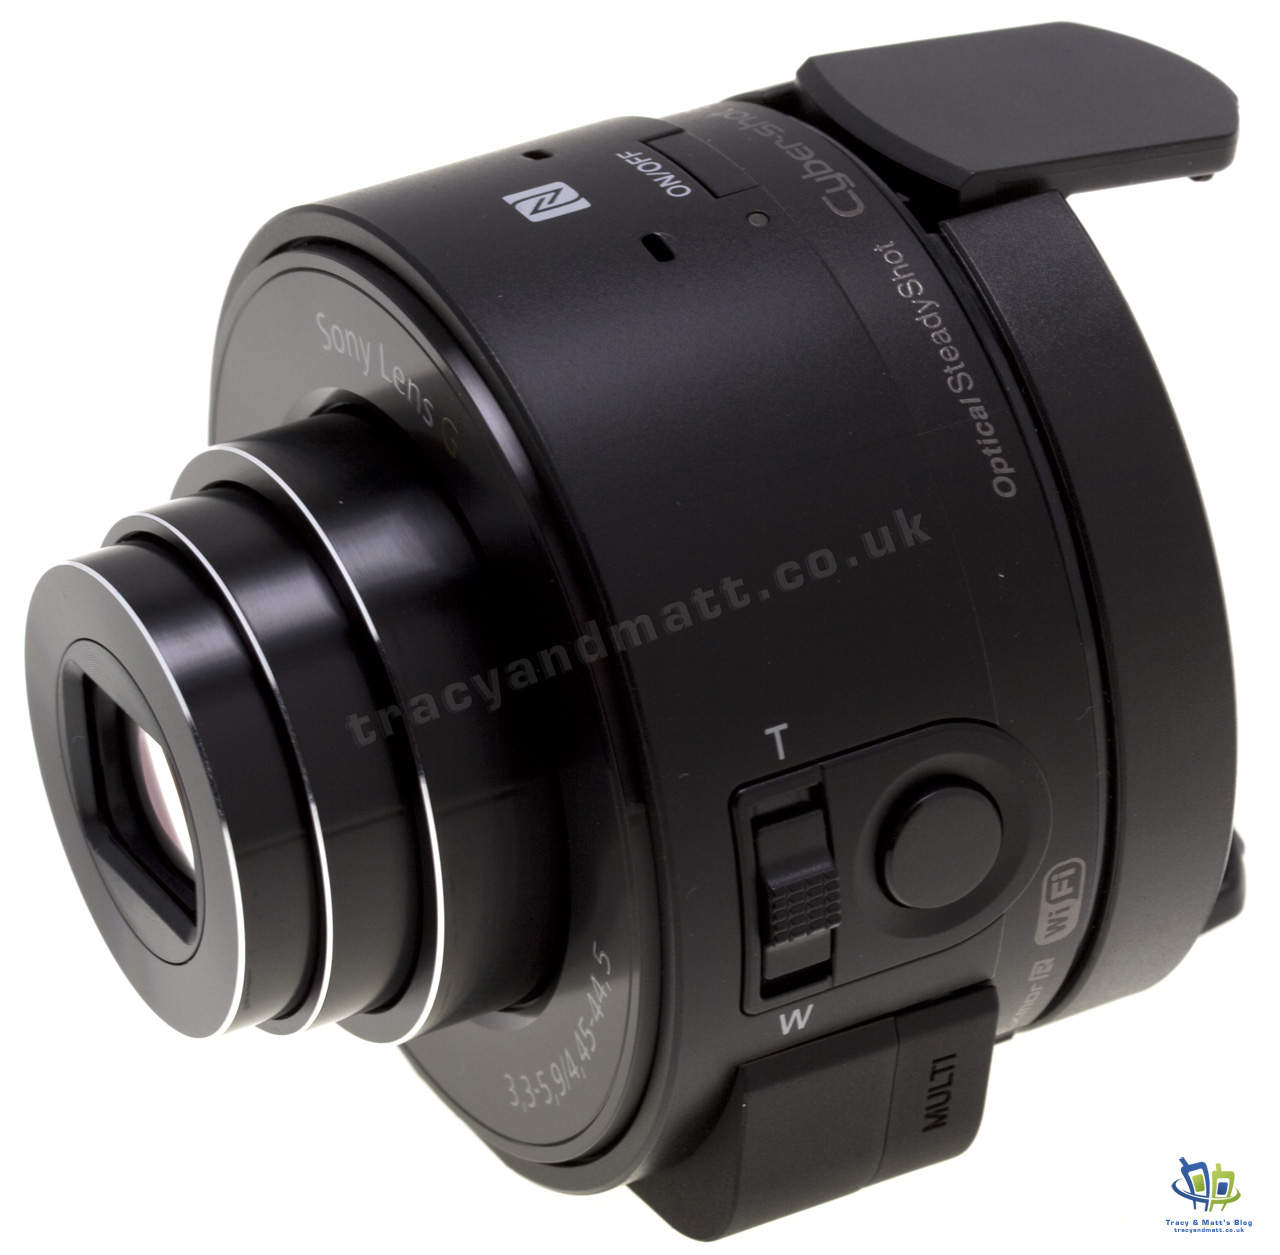 Sony Dsc Qx10 And Qx100 Firmware V20 Is Available To Download From Lens Towards The End Of 2013 Announced That A For Cameras Use With Smartphones Would Be Released In January